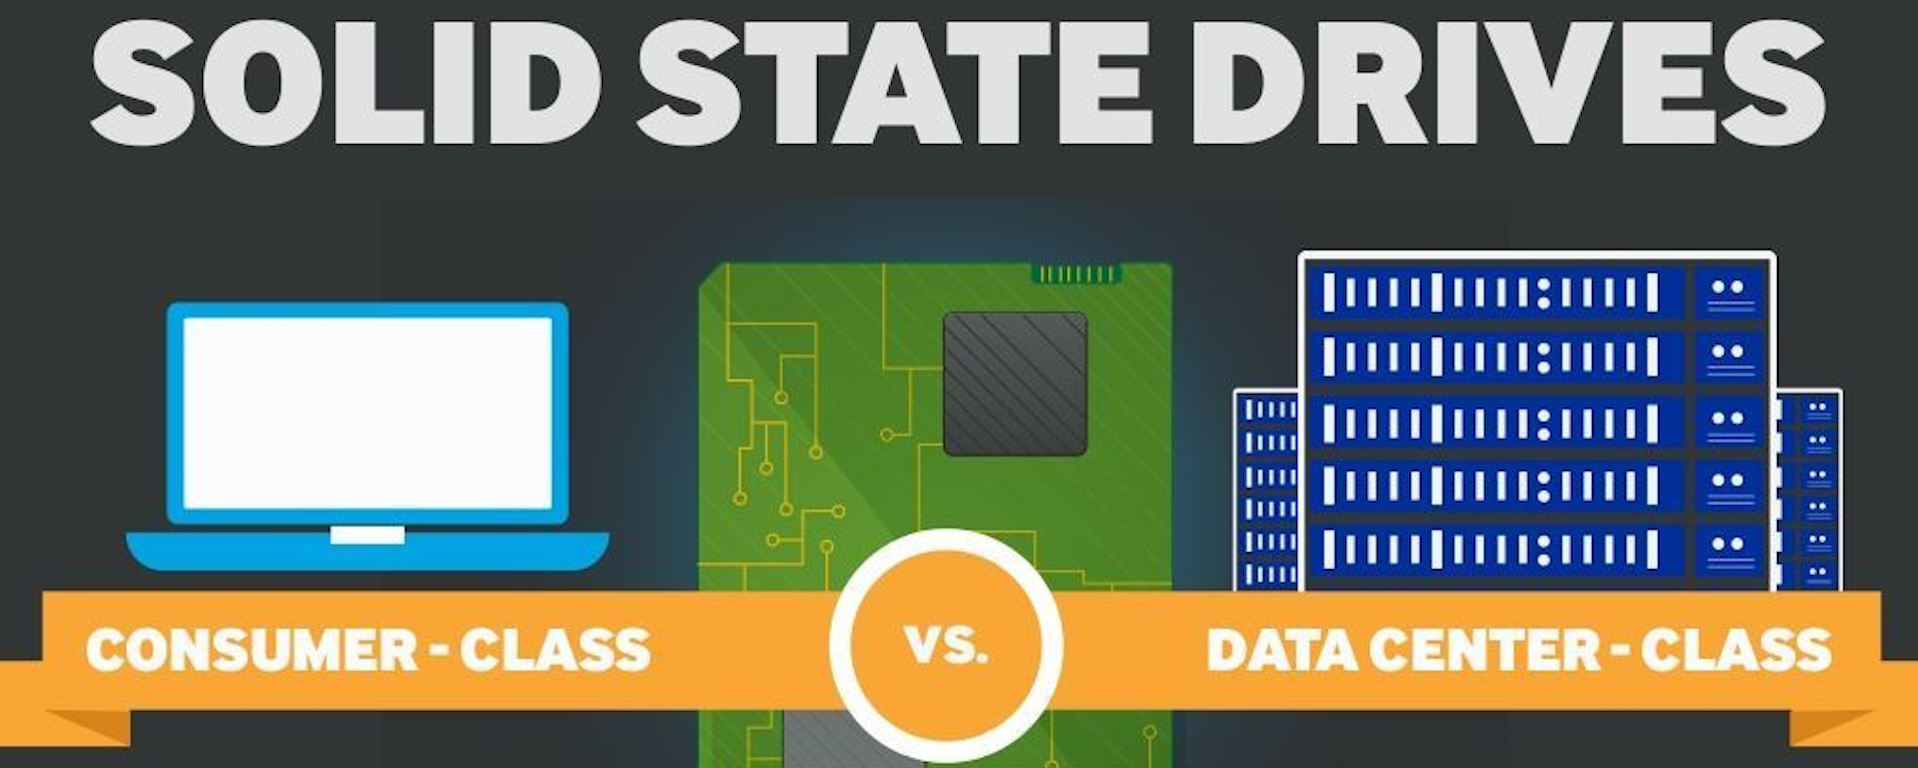 Enterprise SSDs boost performance in data centers.